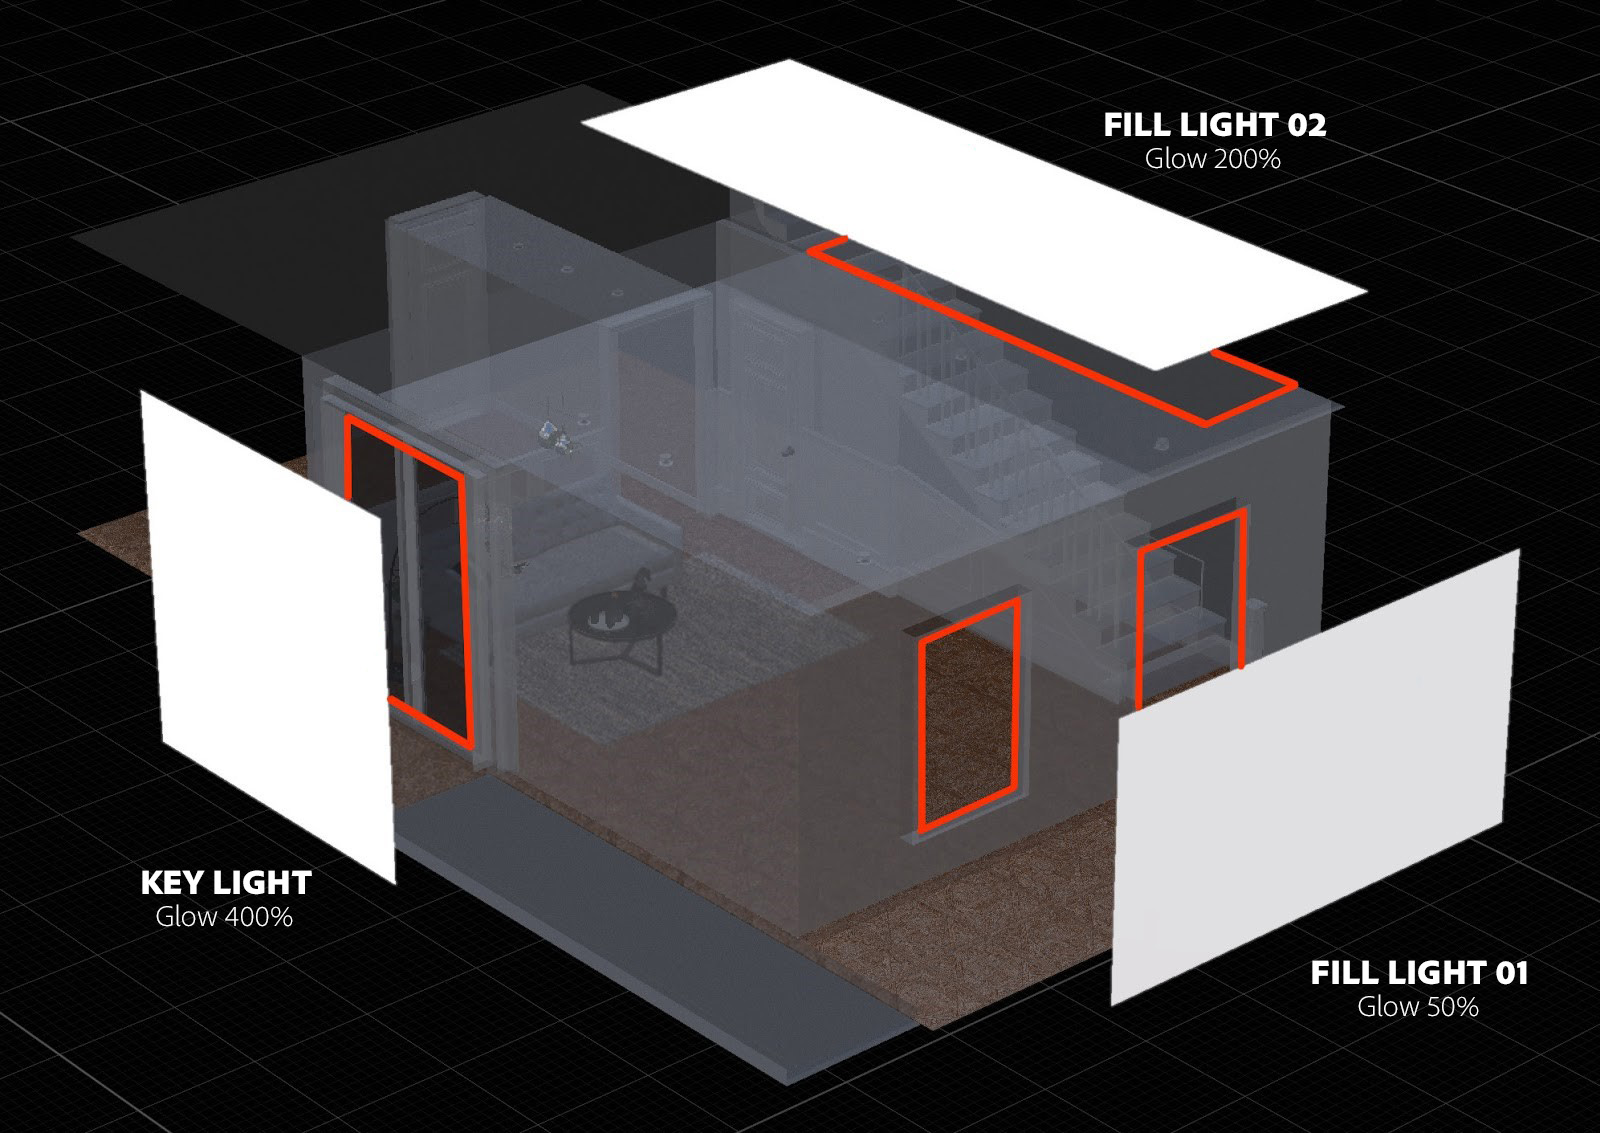 An illustration demonstrating how key and fill lights are positioned in a 3D living room interior to illuminate the scene